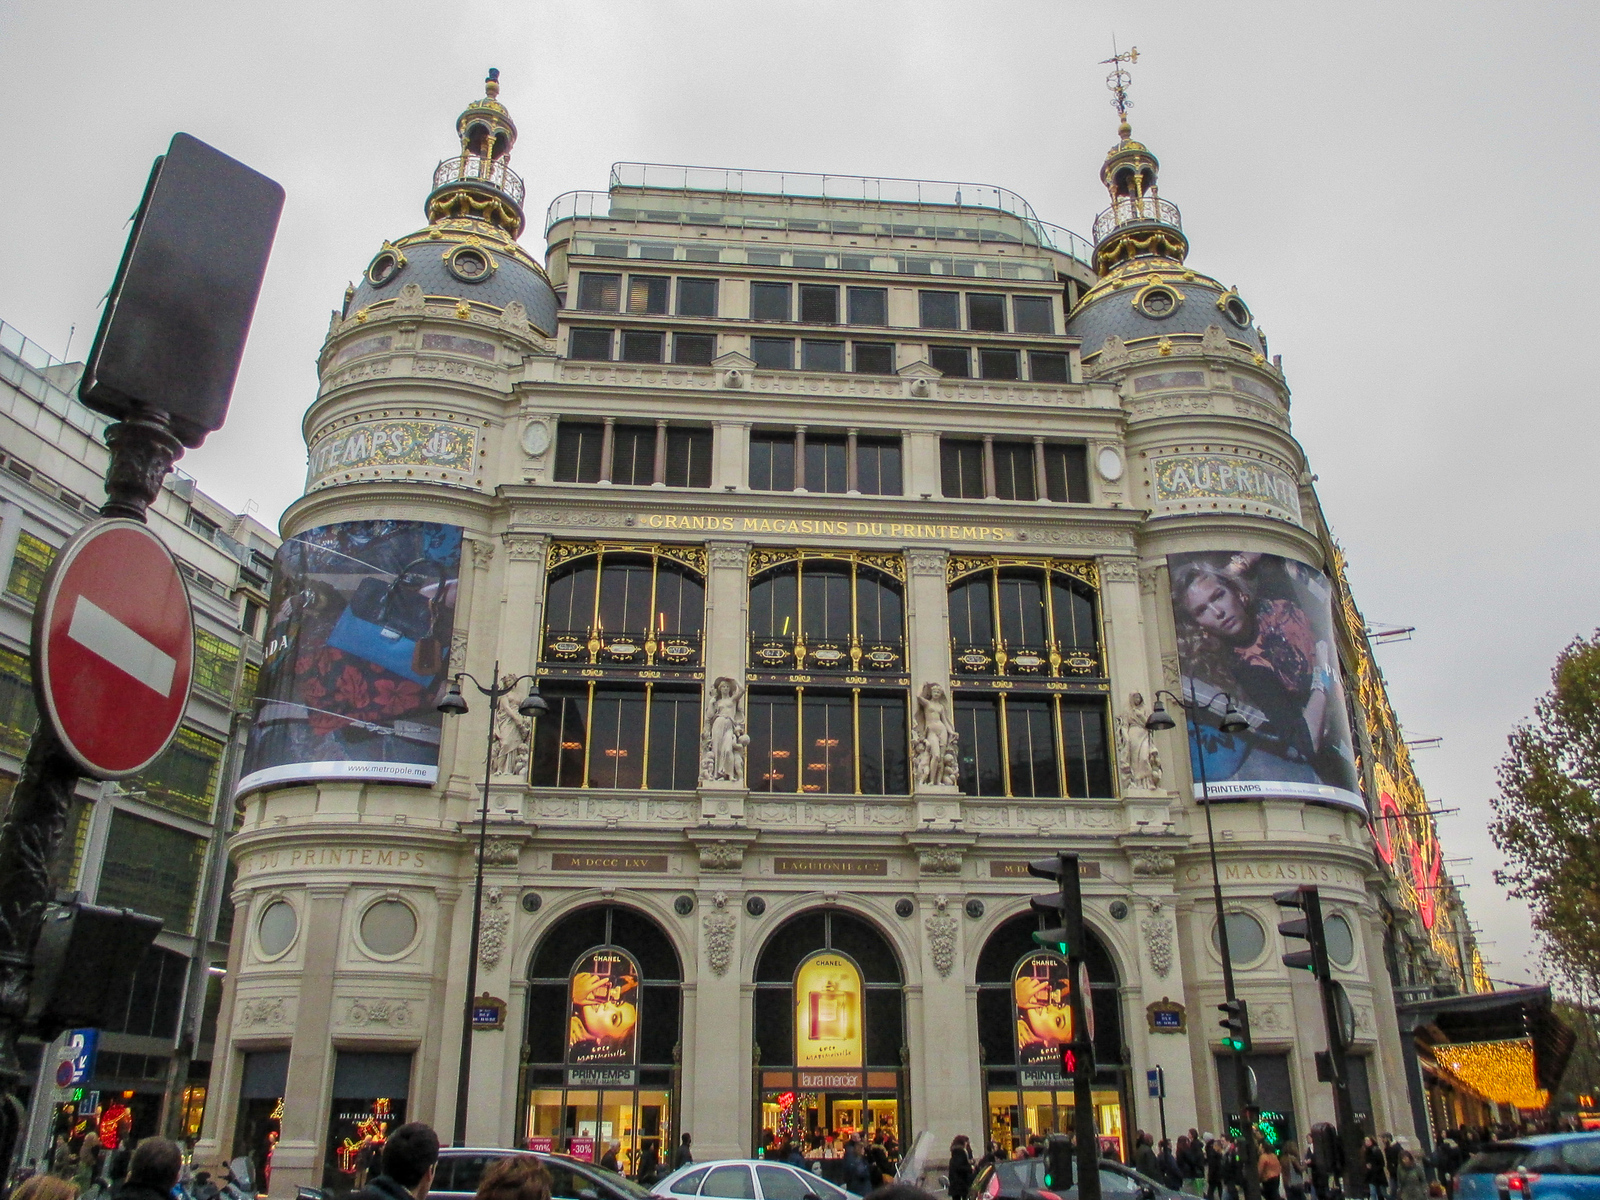 in your paris in 2 days itinerary you need to include some great department stores